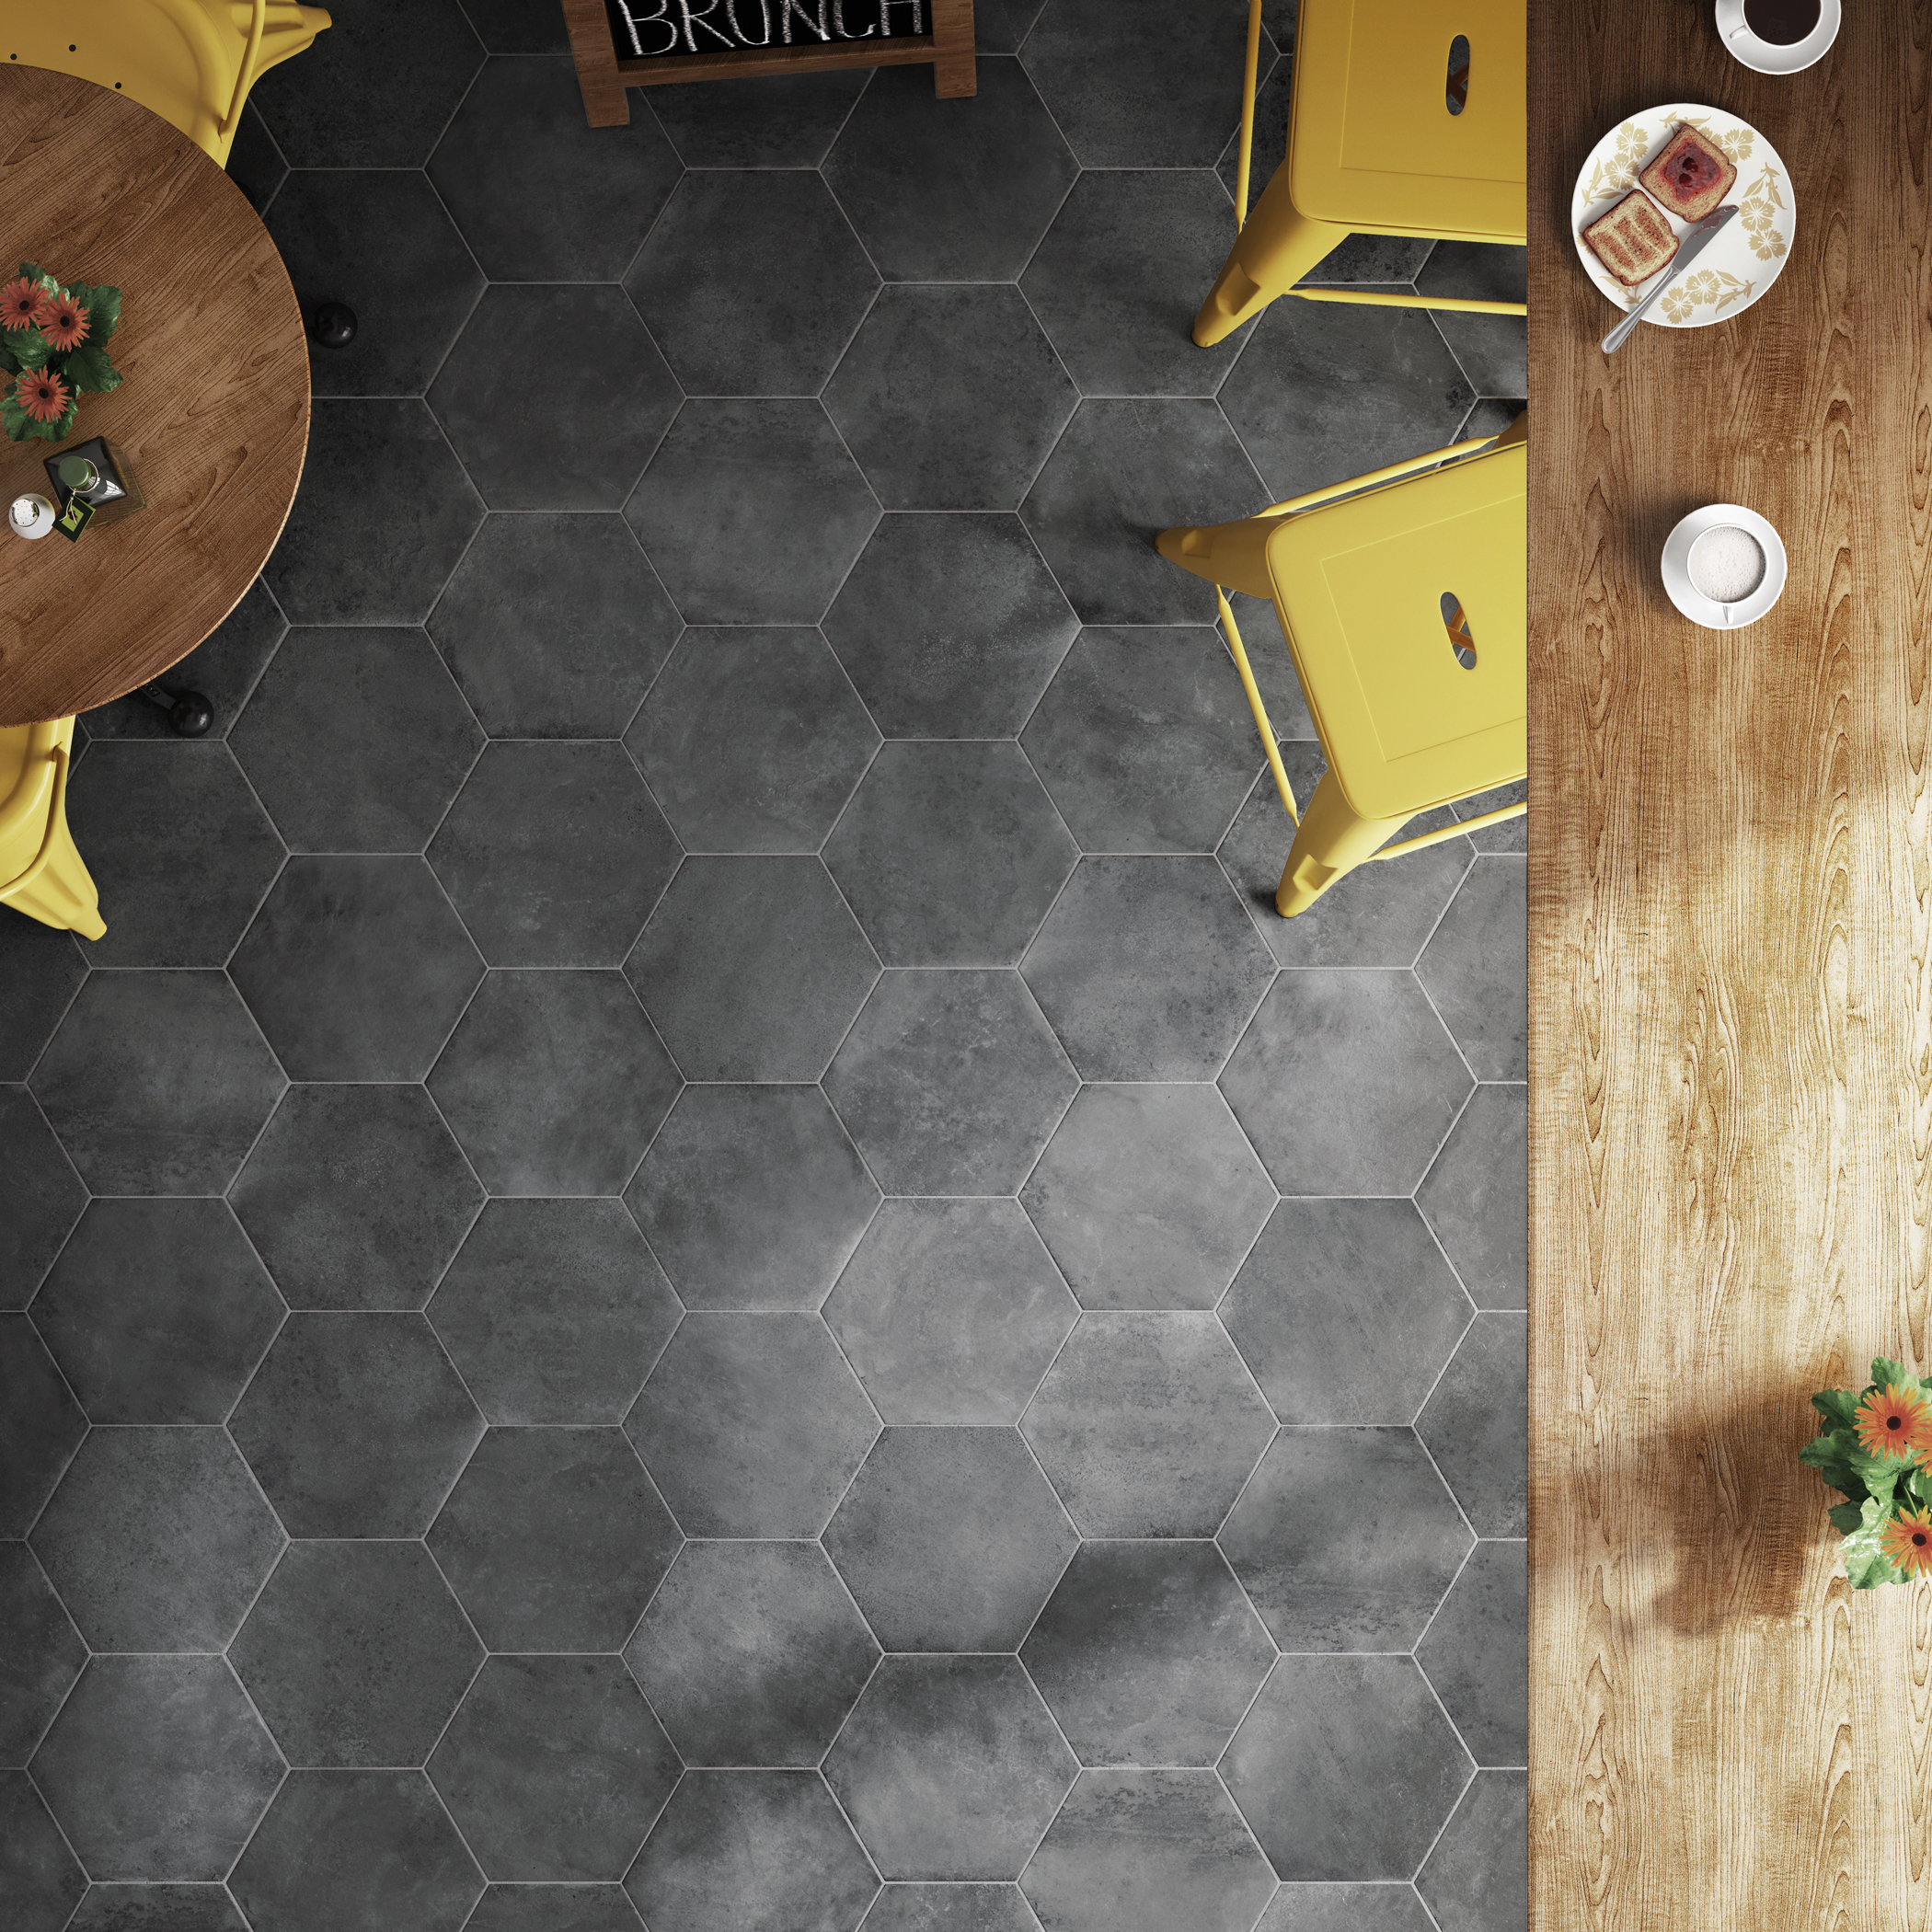 Urban Hexagon Series by Equipe